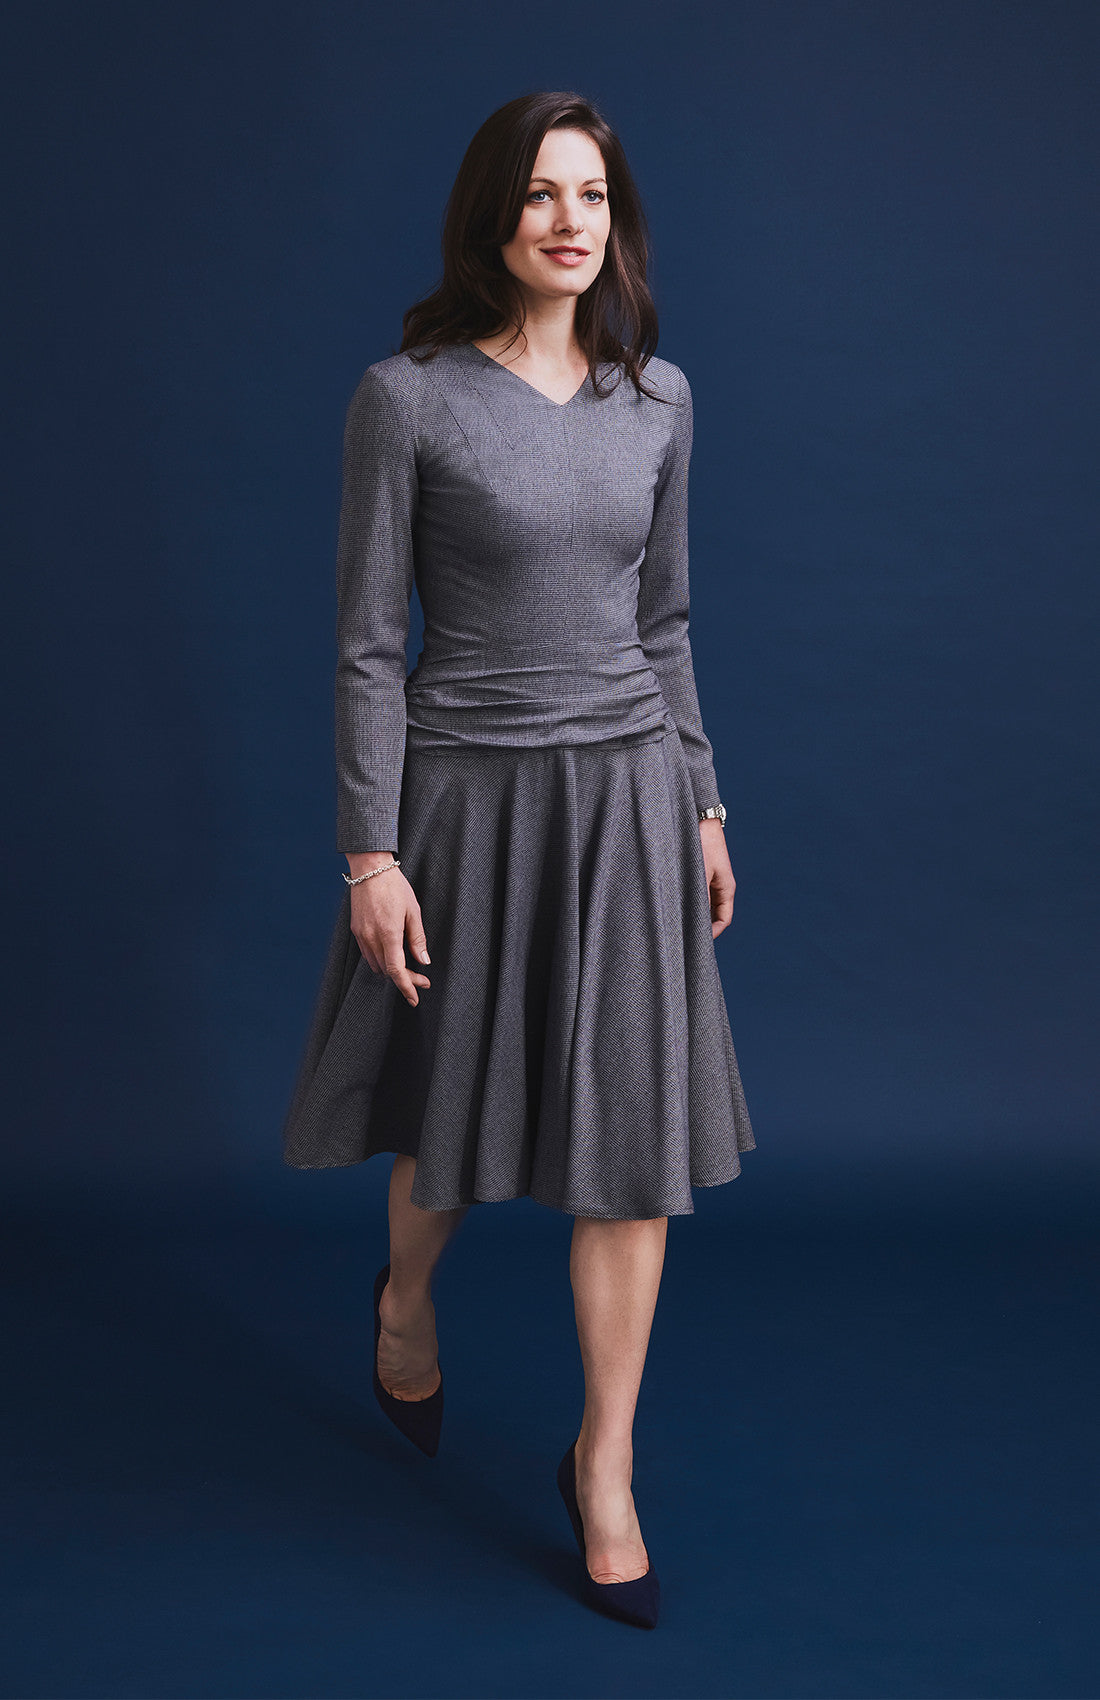 Herringbone fit and flare tailored work dress for the office